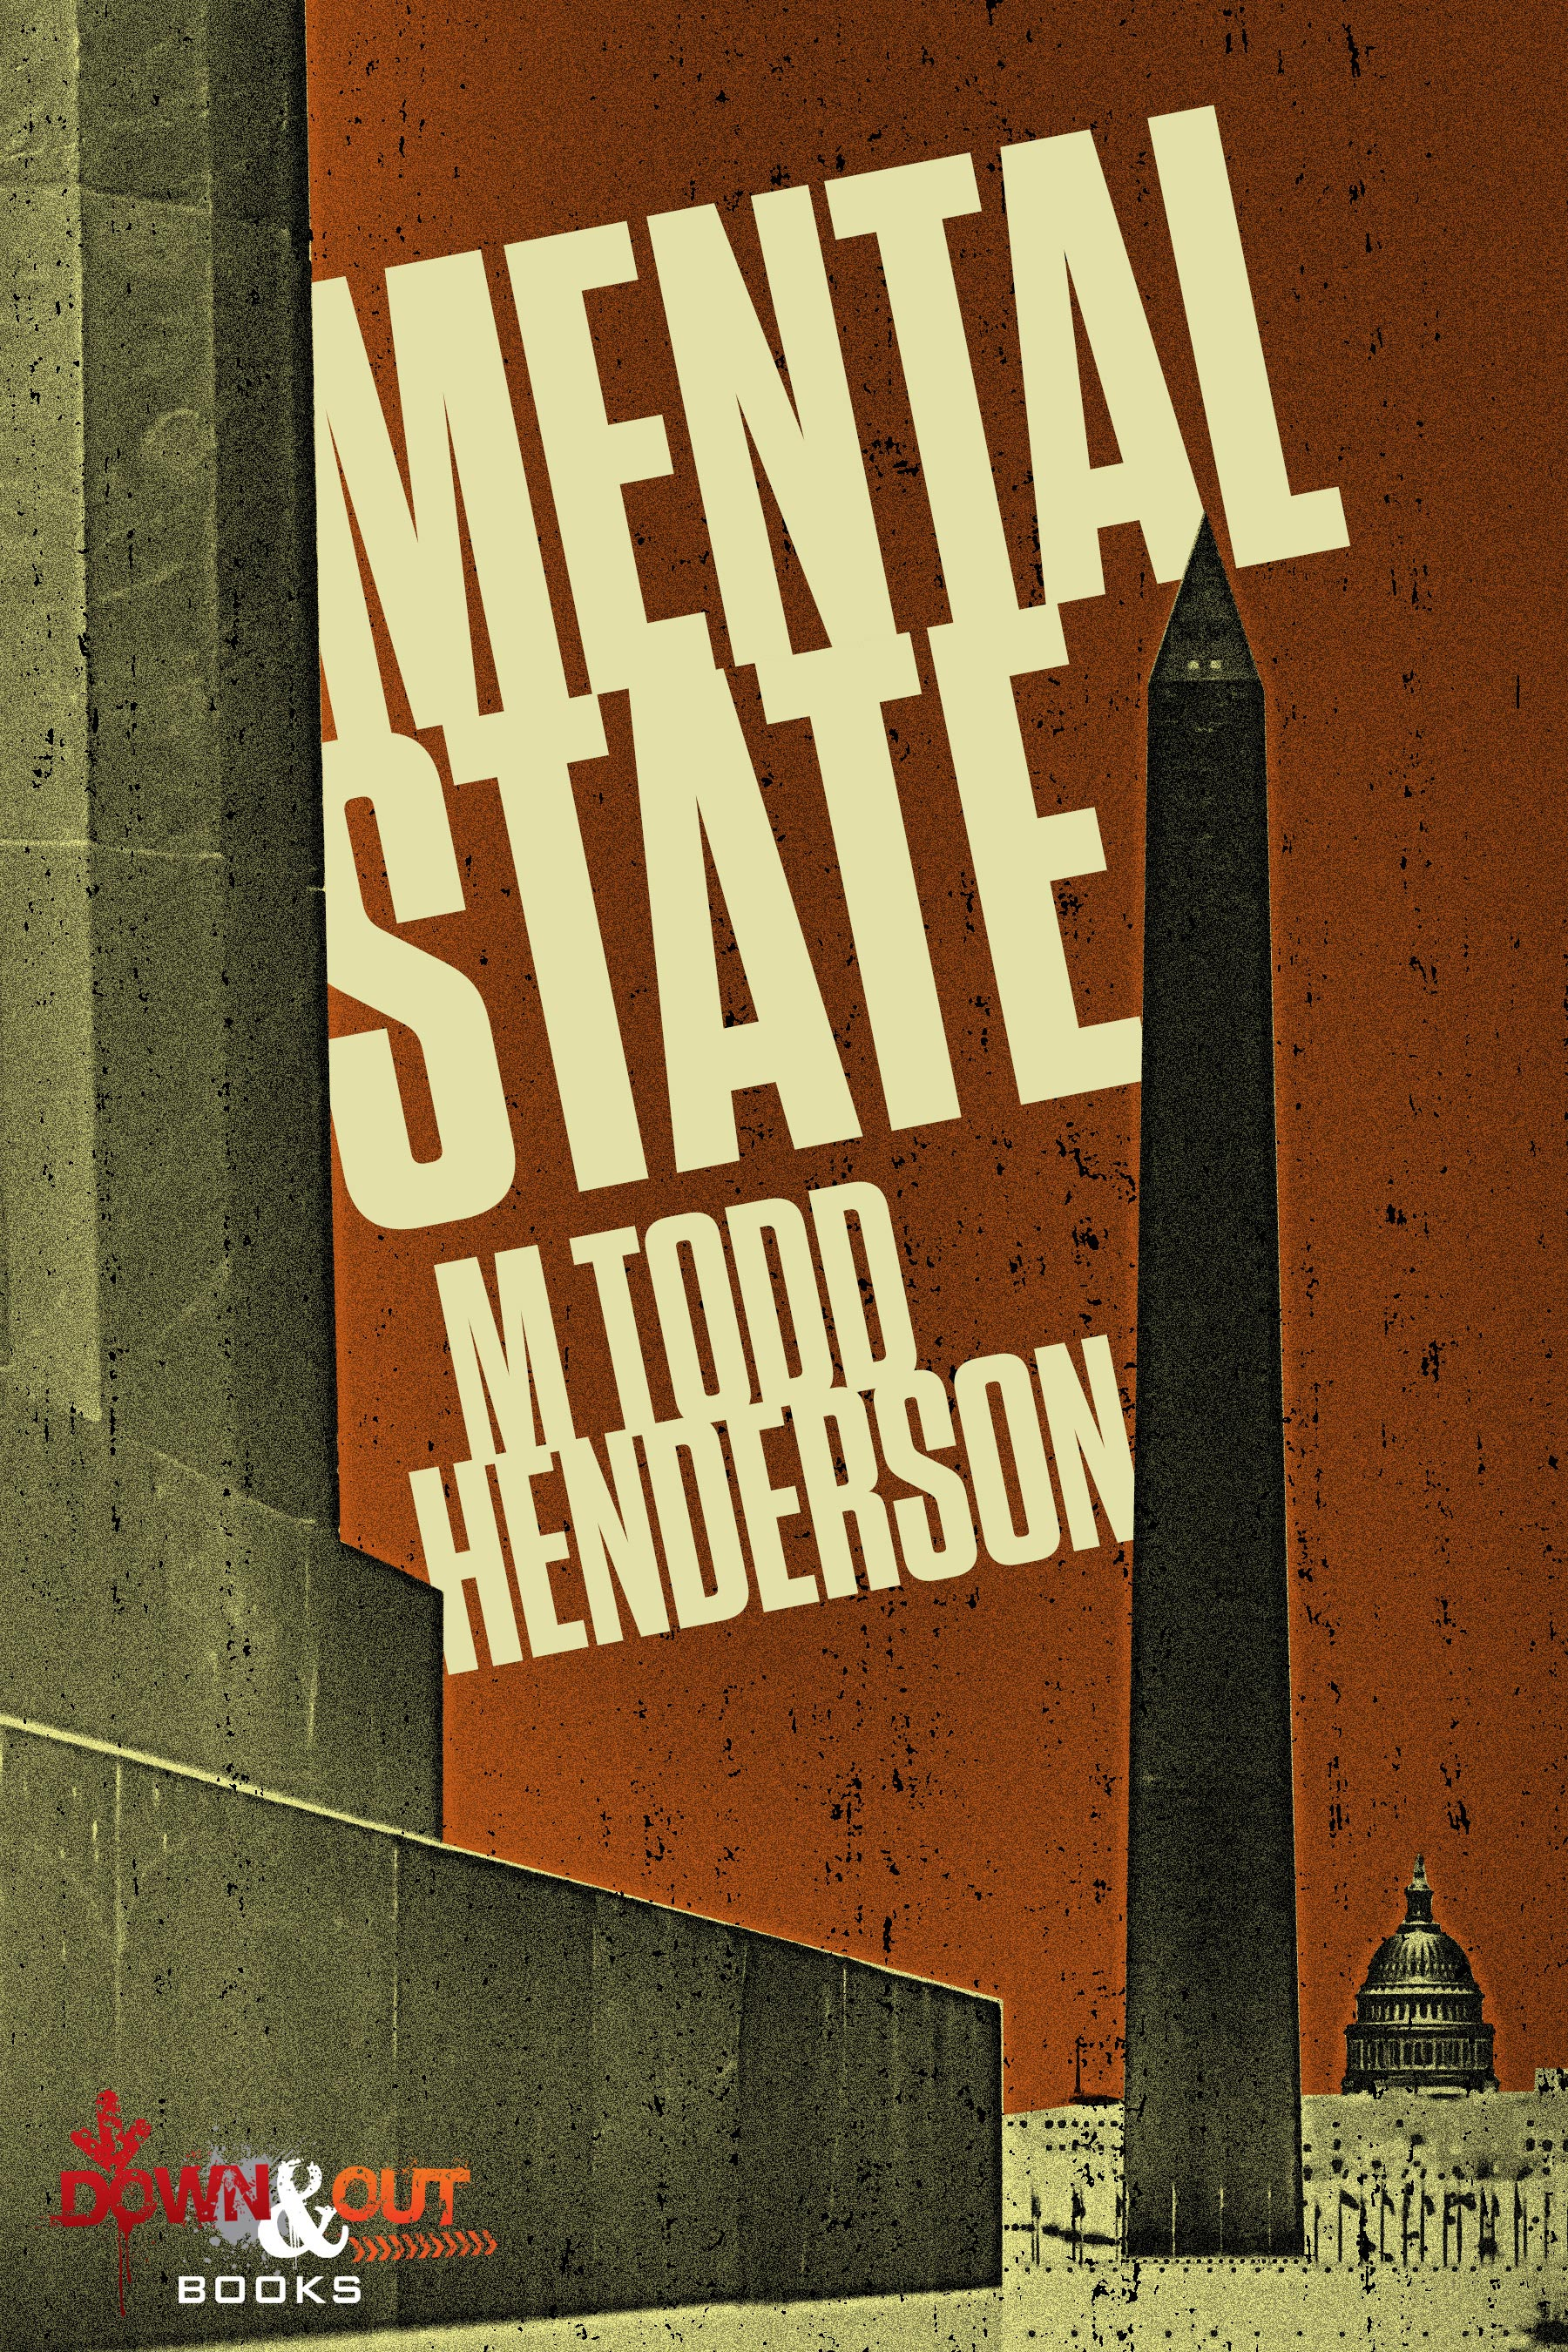 Who Murdered the Supreme Court Candidate: Mental State, a mystery novel by Law Professor M. Todd Henderson